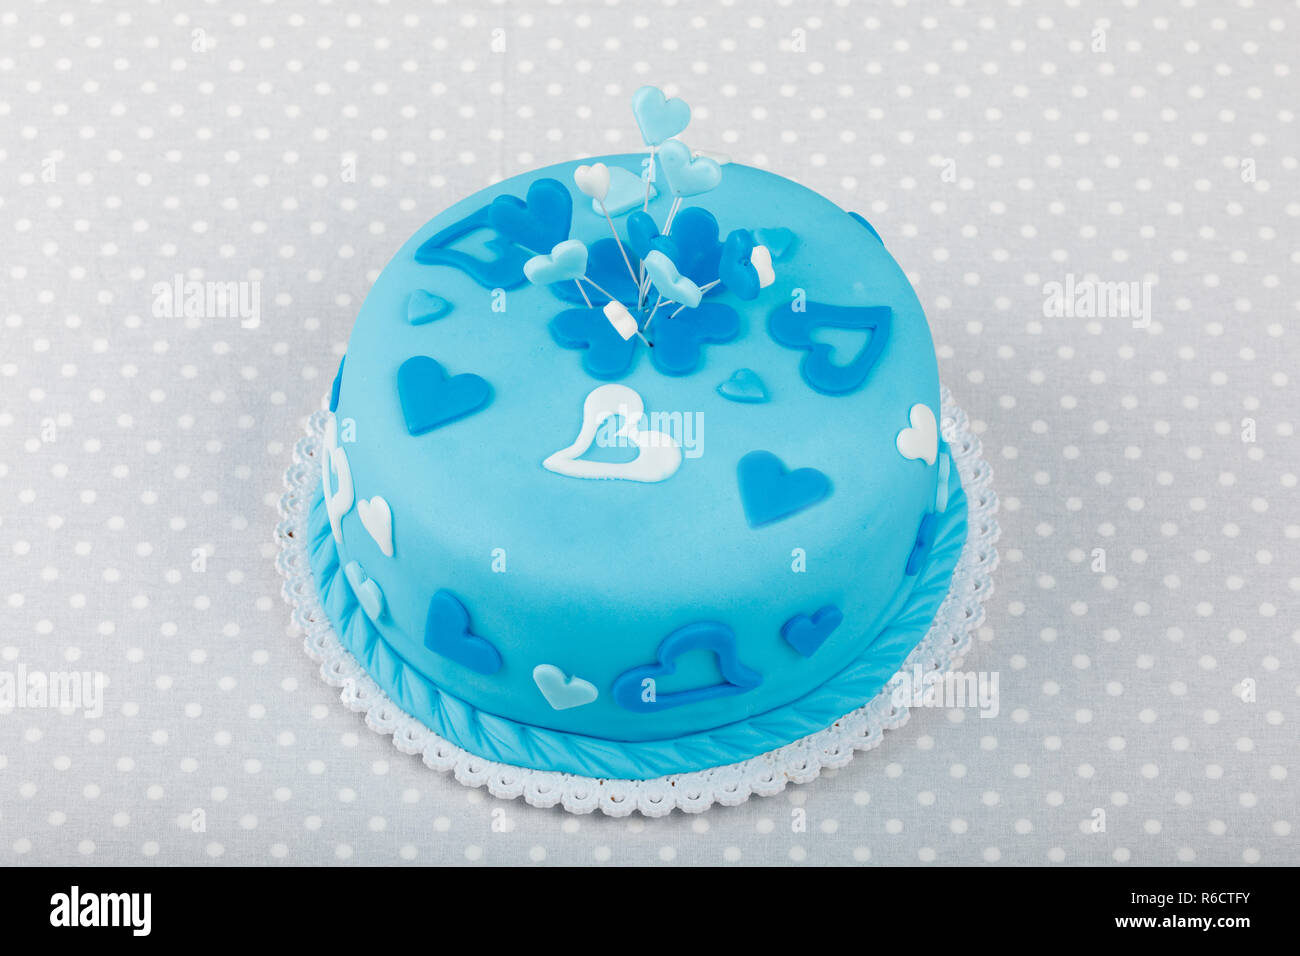 Marvelous Birthday Valentine Cake Stock Photo 227705407 Alamy Funny Birthday Cards Online Fluifree Goldxyz